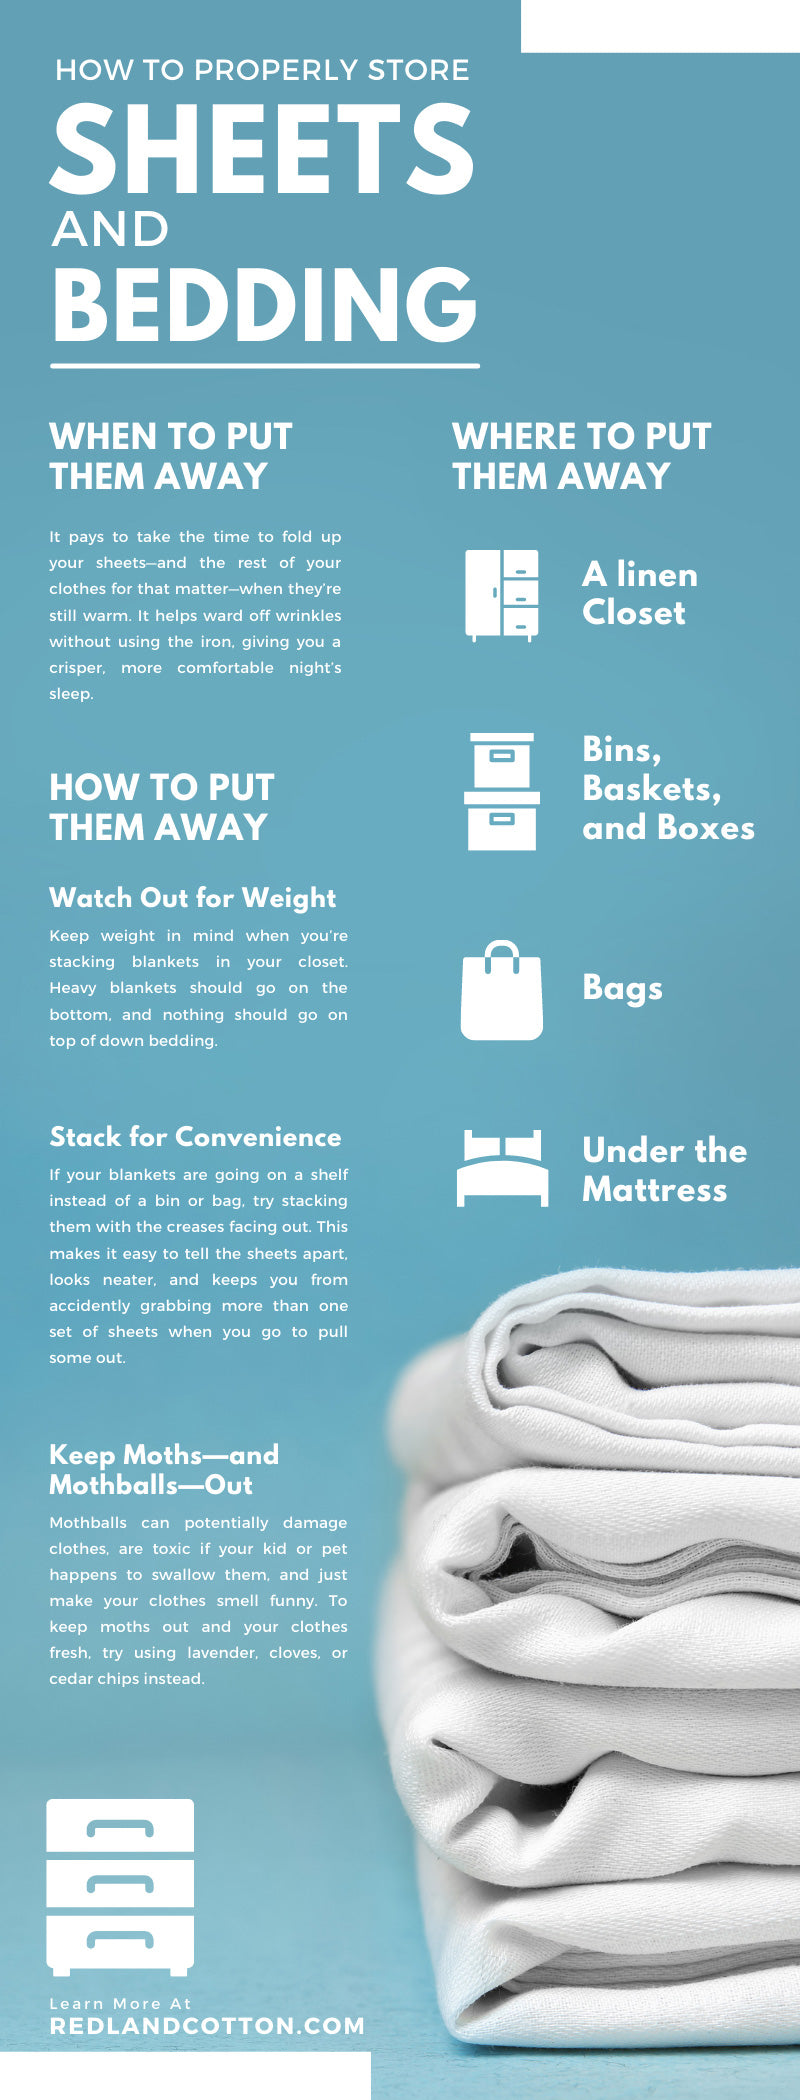 How To Properly Store Sheets and Bedding